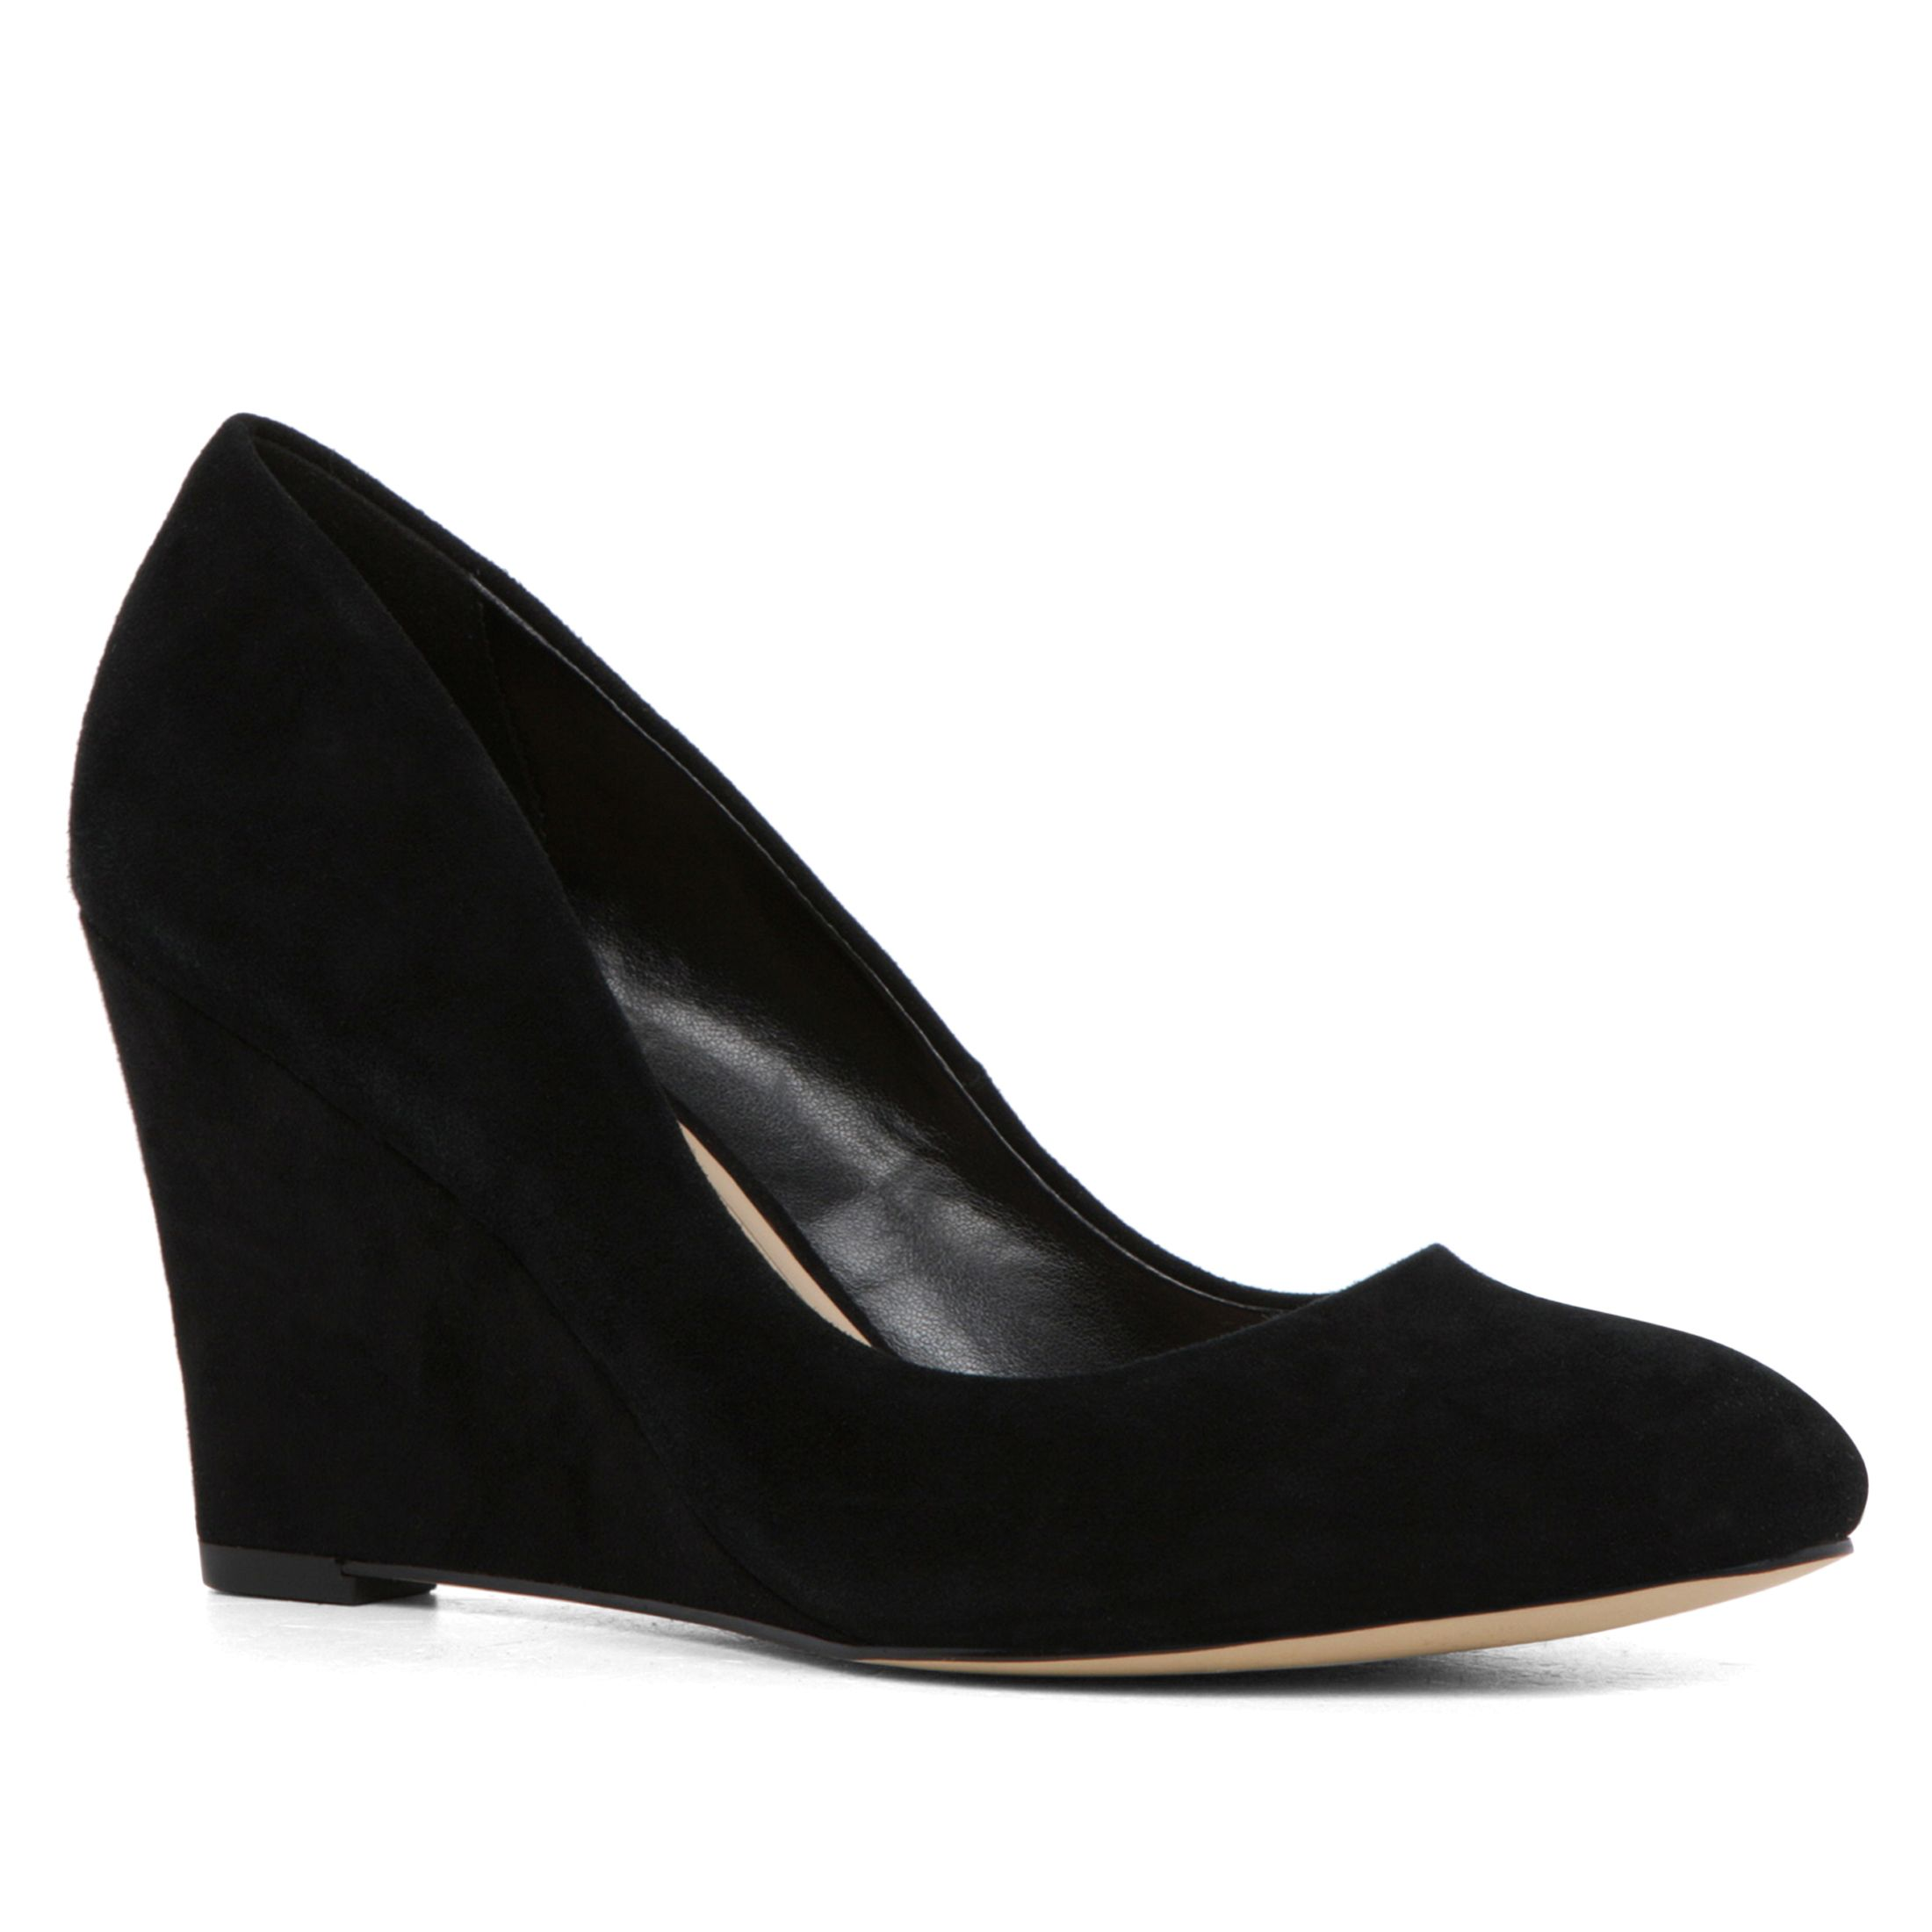 rubber sole wedge heel shoes house of fraser